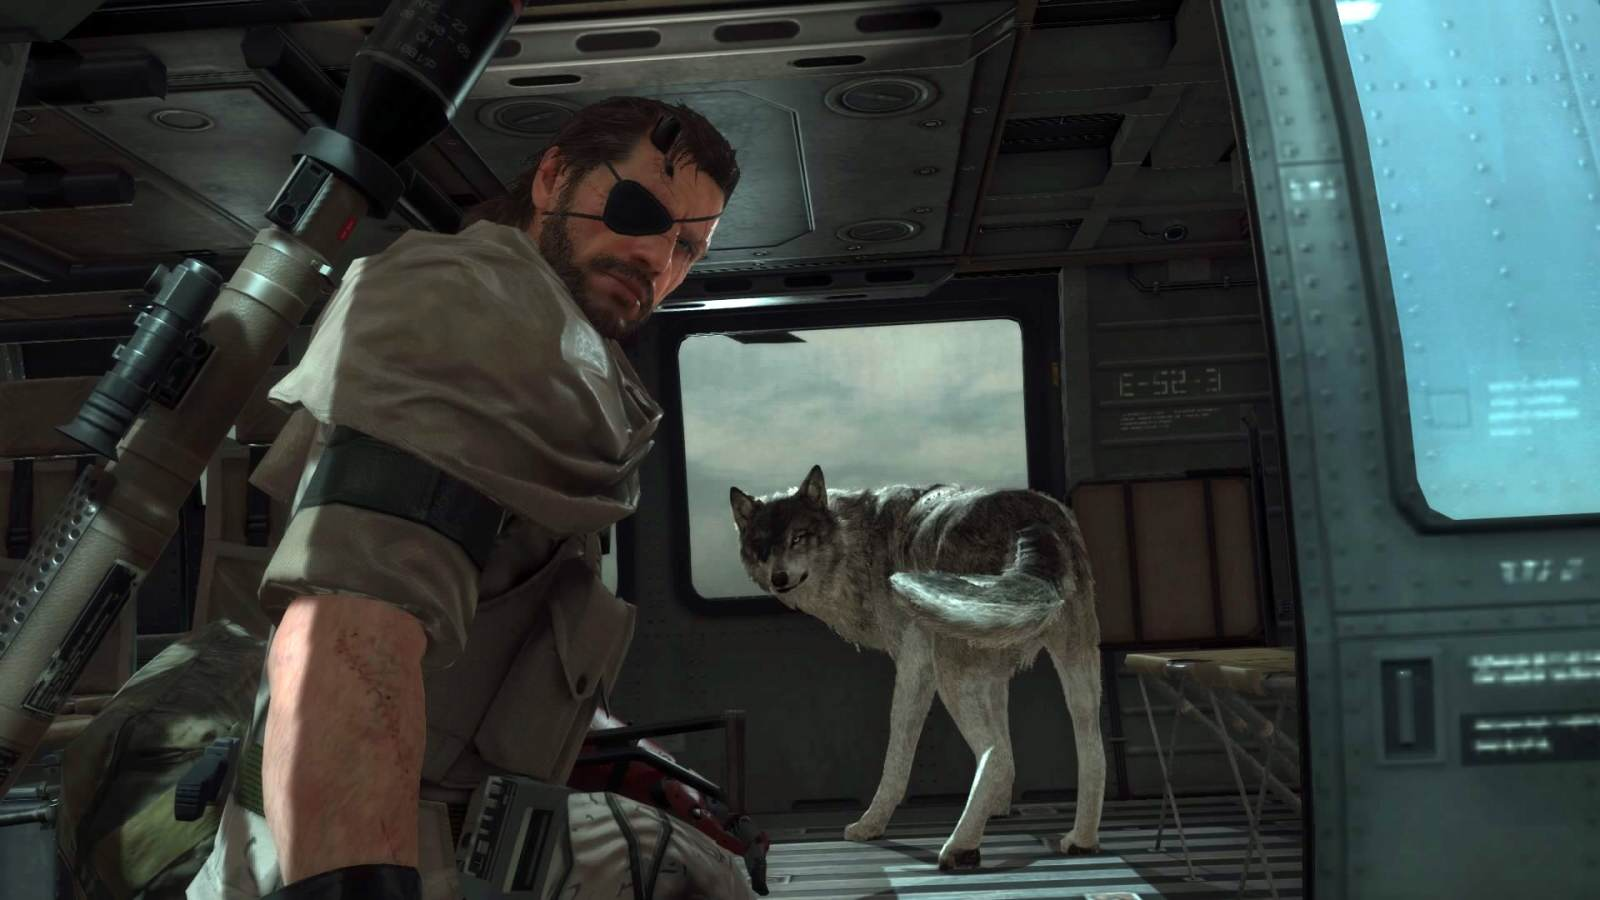 metal gear solid 5 Iconic Metal Gear Solid Voice Actor Has No Love For Hideo Kojima